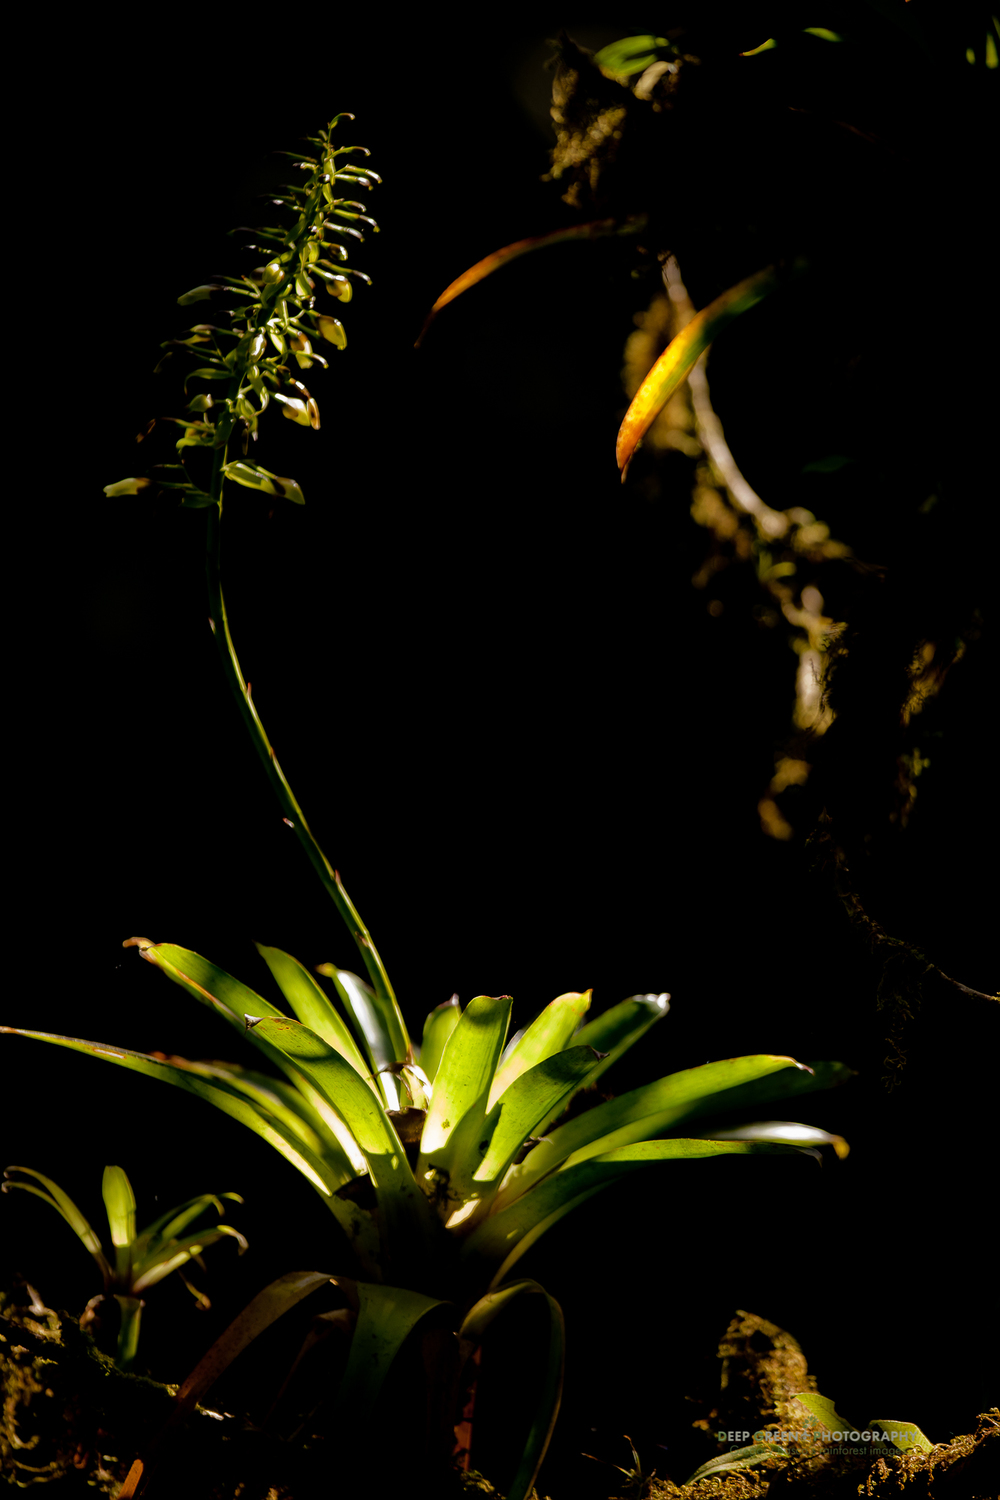 Bromeliad in Monteverde Cloud Forest Preserve